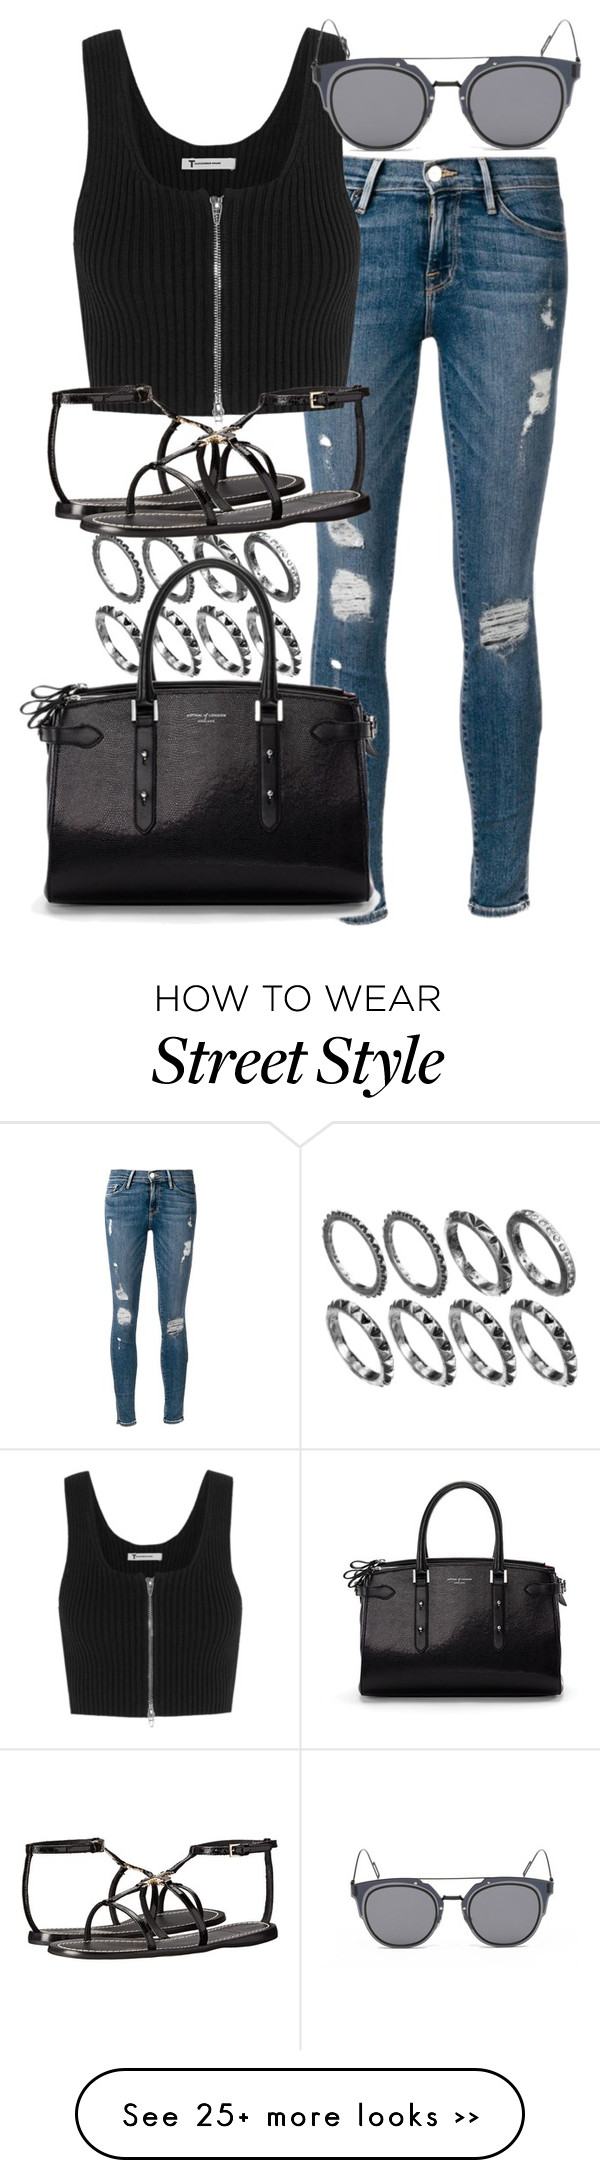 """Untitled #1708"" by keepxonxsmiling on Polyvore"